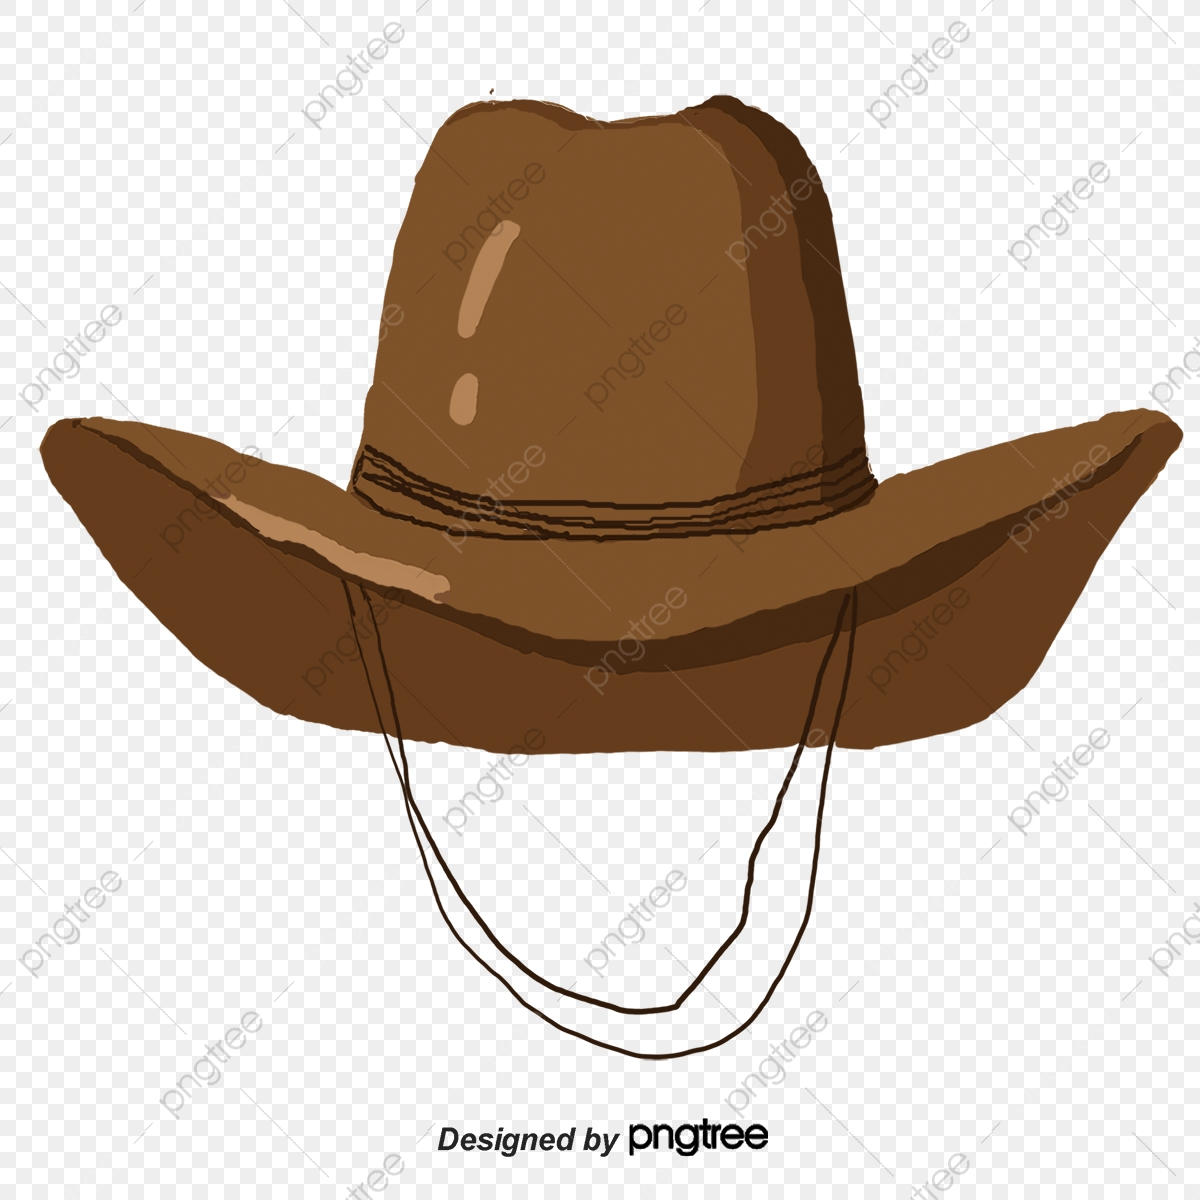 Cowboy Hat Png Images Vector And Psd Files Free Download On Pngtree Upload only your own content. https pngtree com freepng cowboy hat 2584977 html